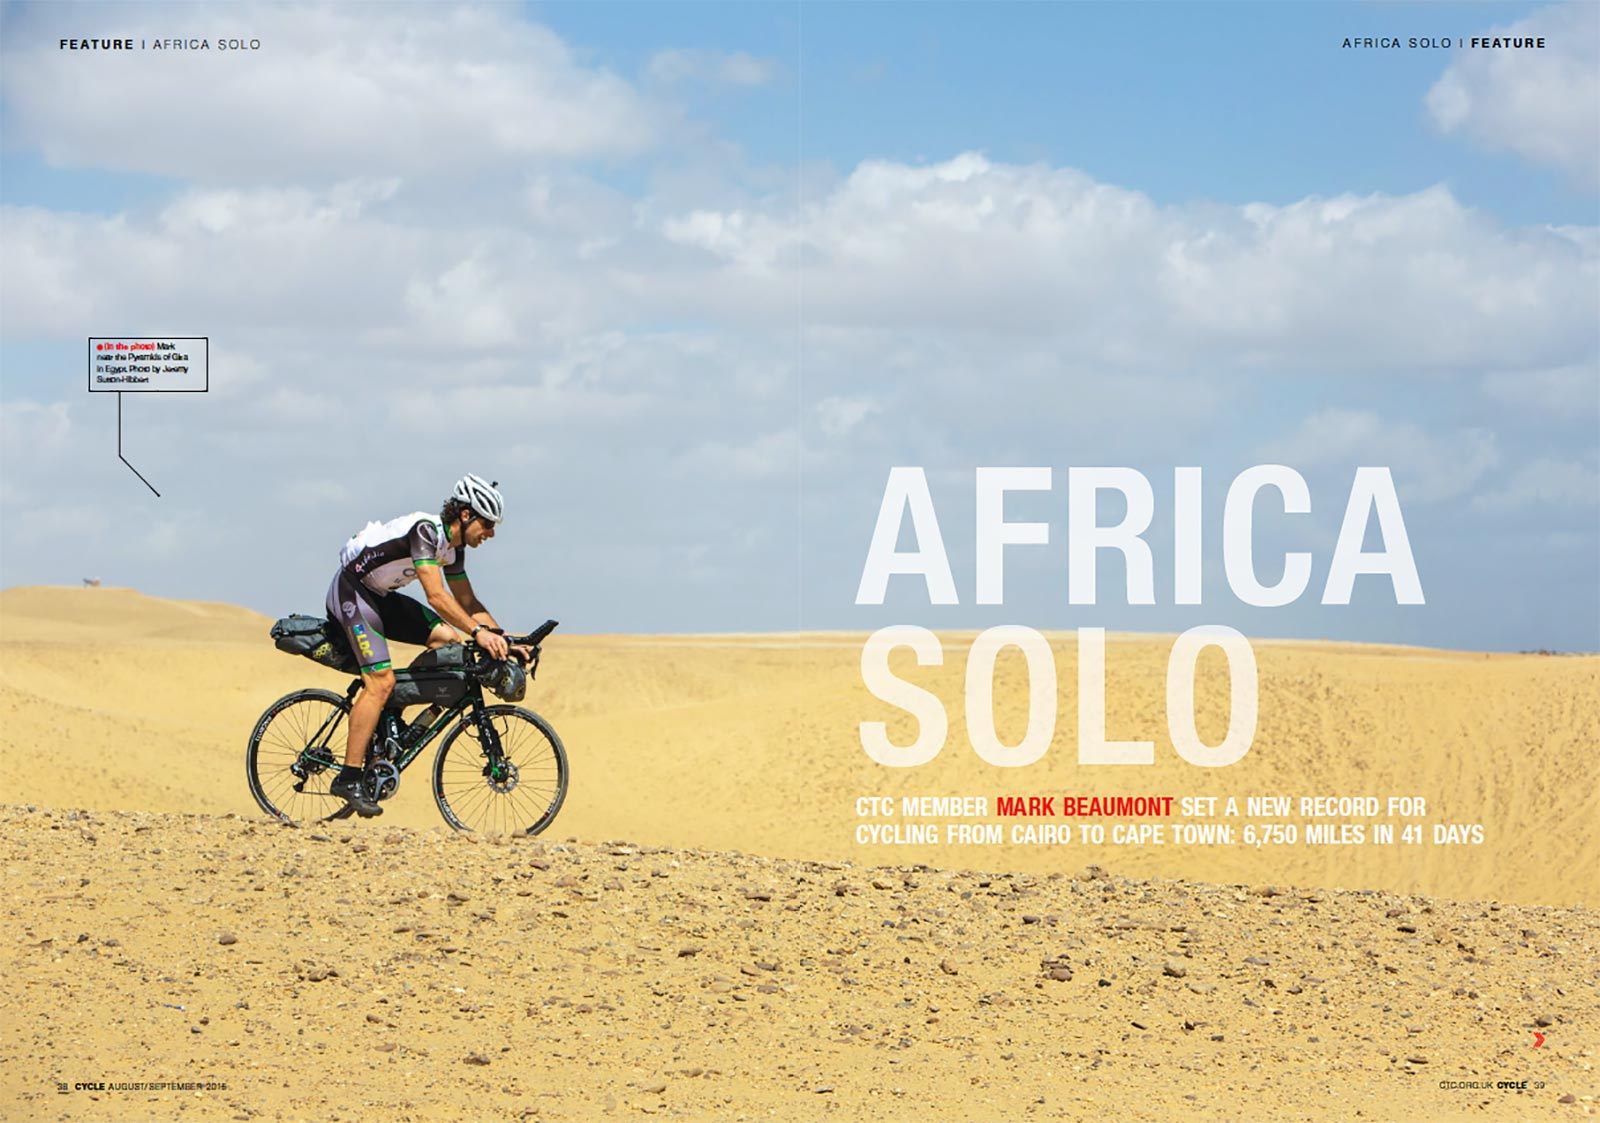 AfricaSolo